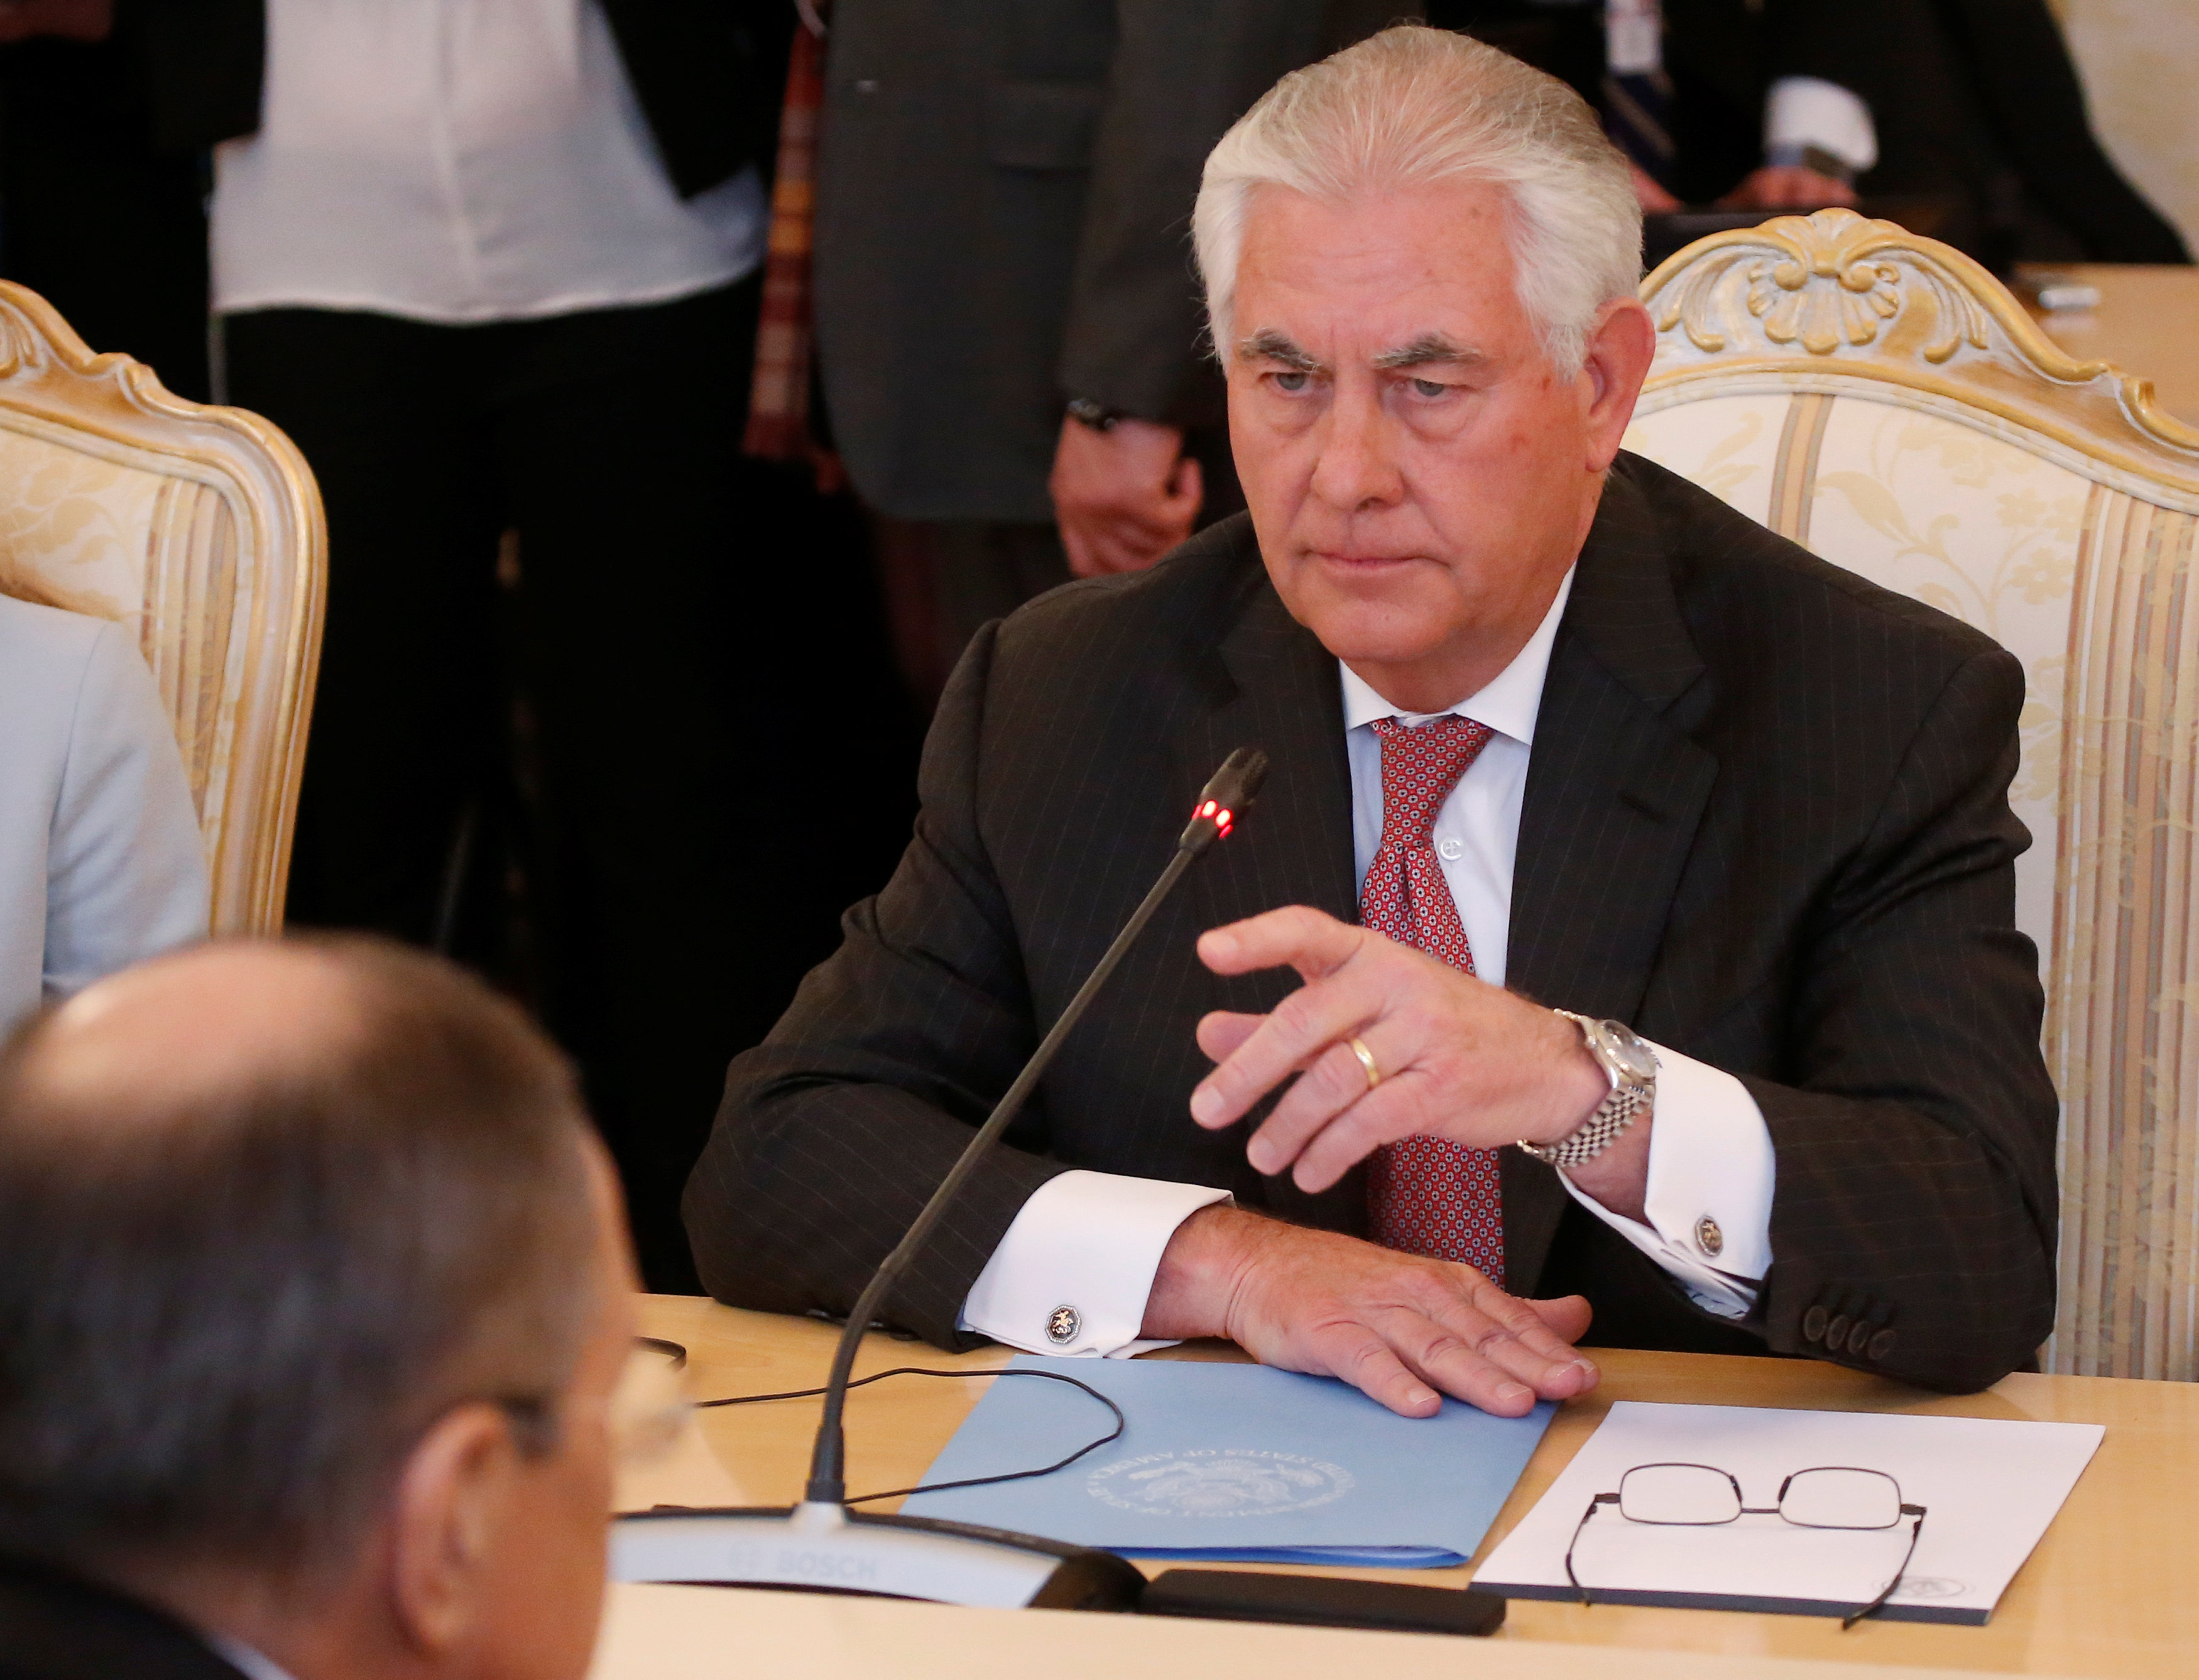 U.S. Secretary of State Rex Tillerson attends a meeting with Russian Foreign Minister Sergei Lavrov in Moscow, Russia